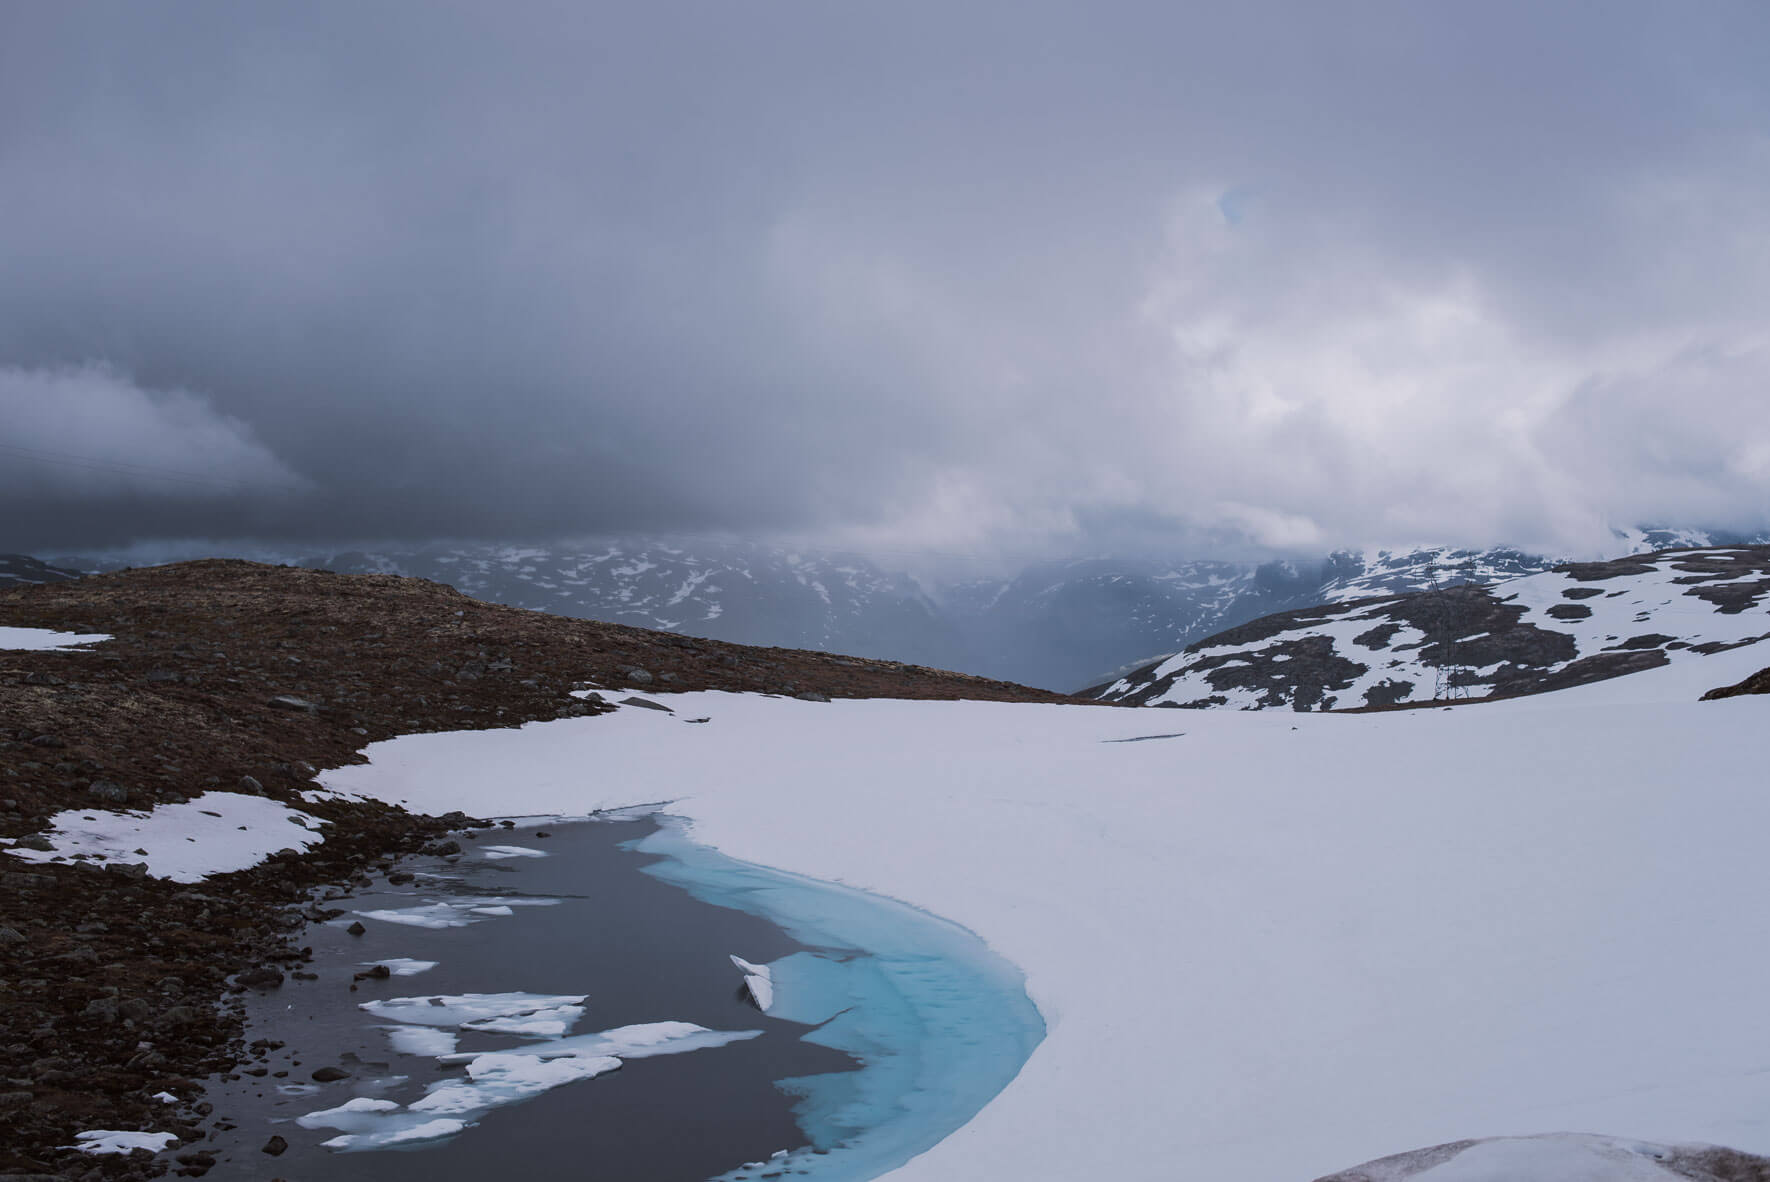 Frozen lake on the Snøvegen in Norway crossing the Aurlandsfjellet mountains